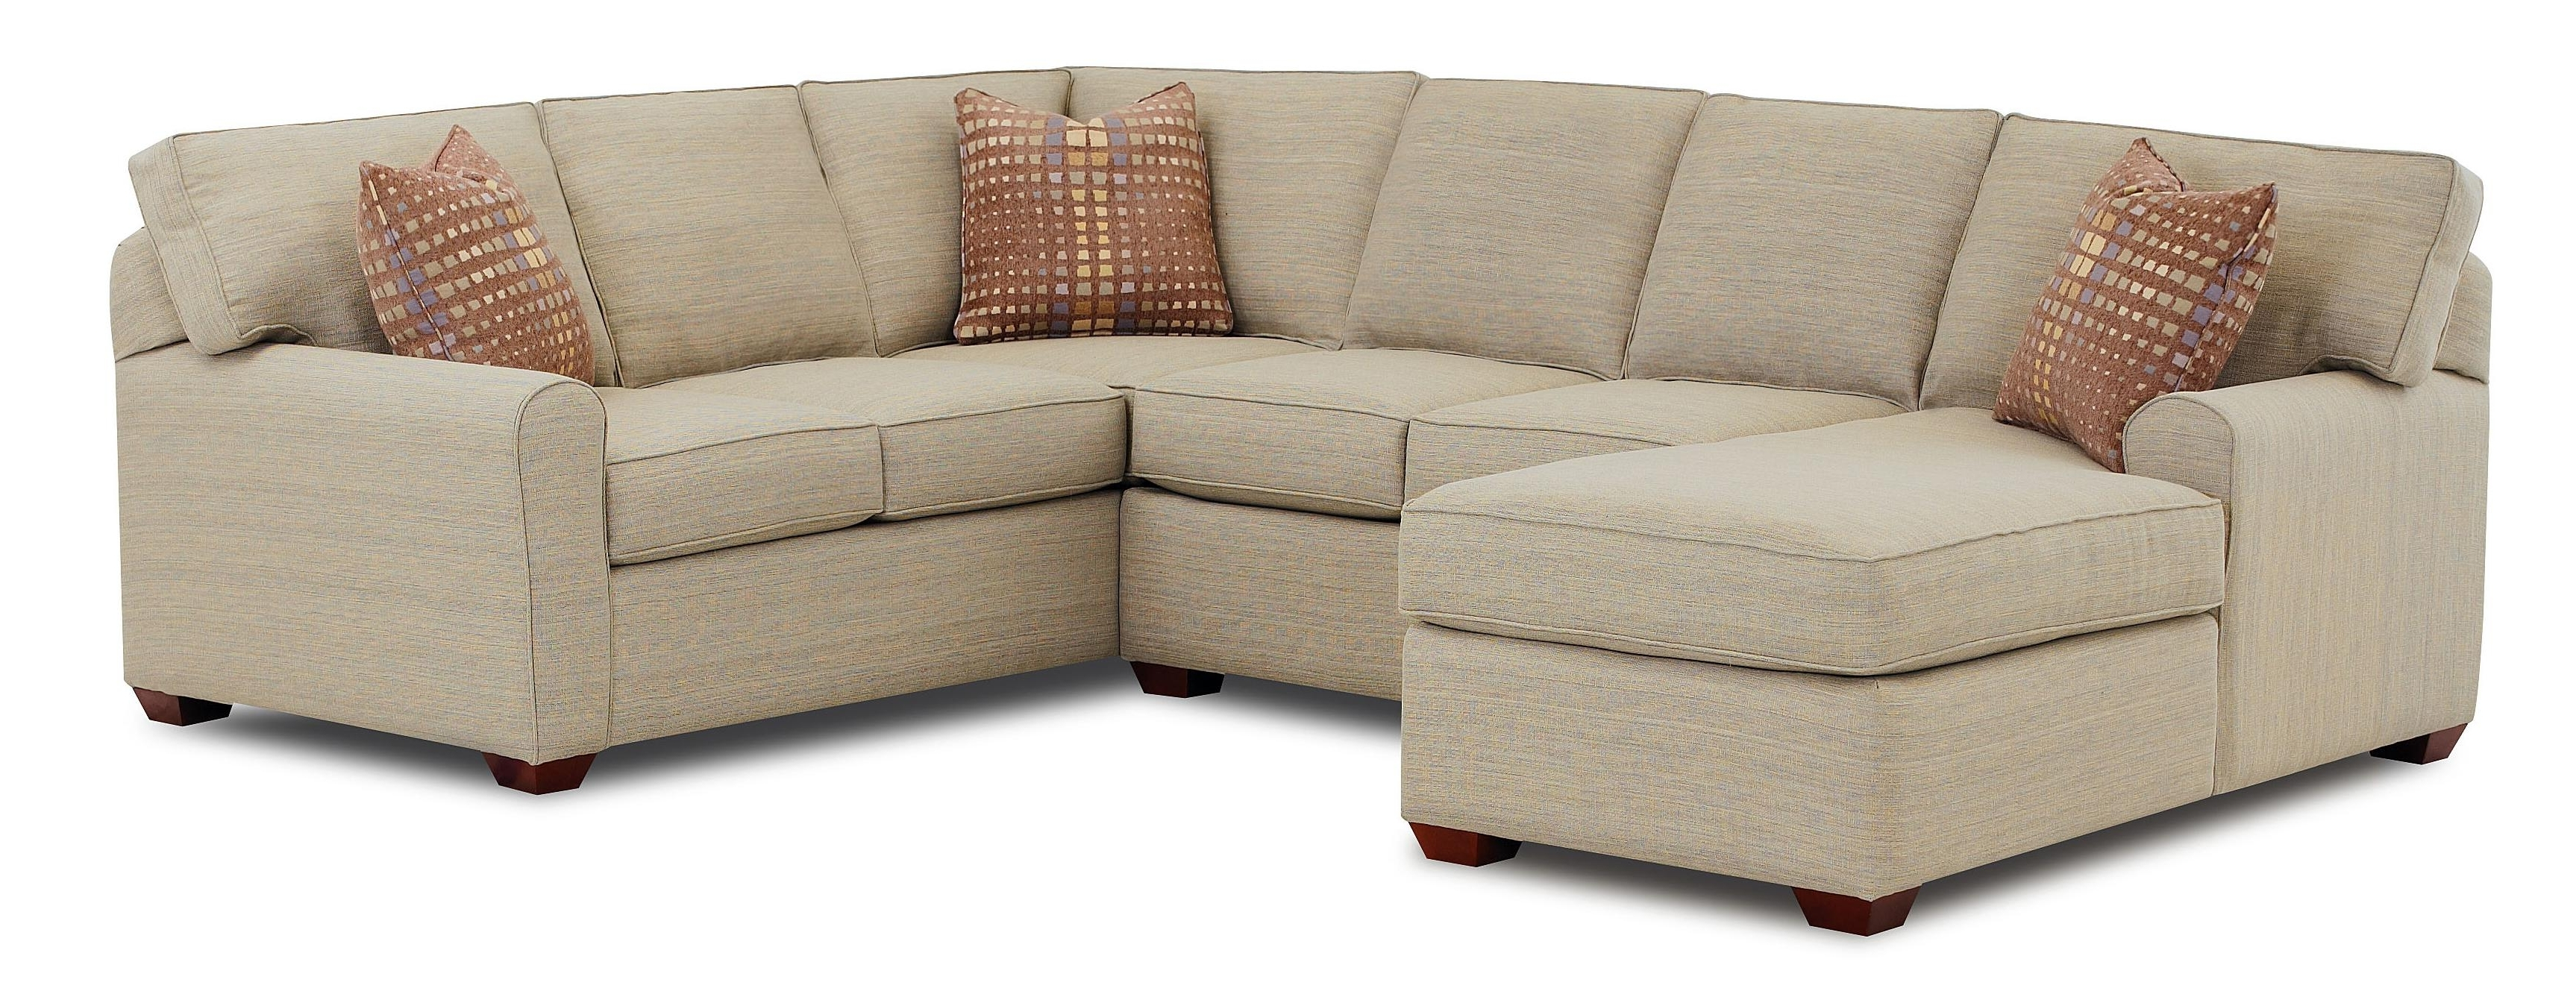 Current Klaussner Hybrid Sectional Sofa With Left Facing Chaise Lounge With Regard To Killeen Tx Sectional Sofas (View 15 of 20)